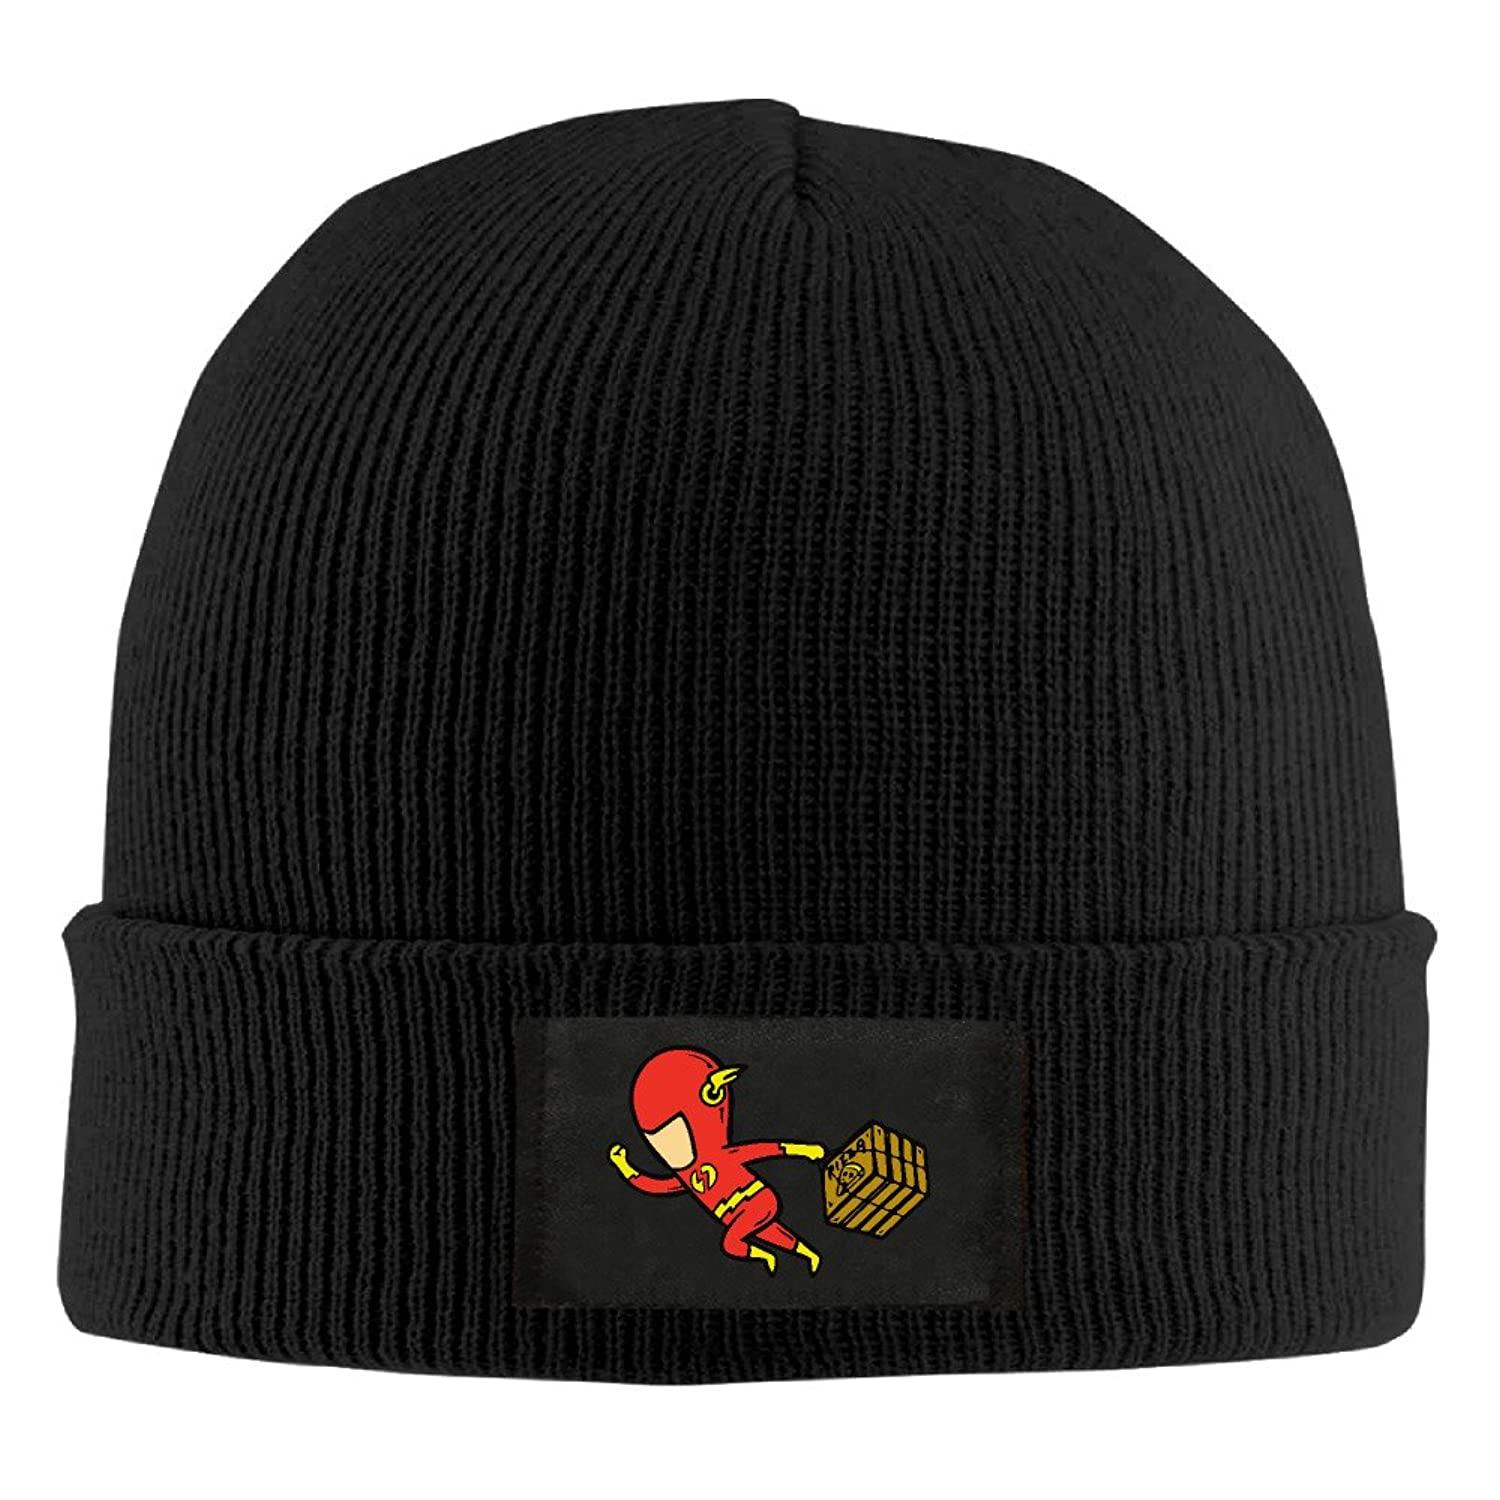 YFLLAY The Flash Messenger Knit Cap Woolen Hat For Unisex